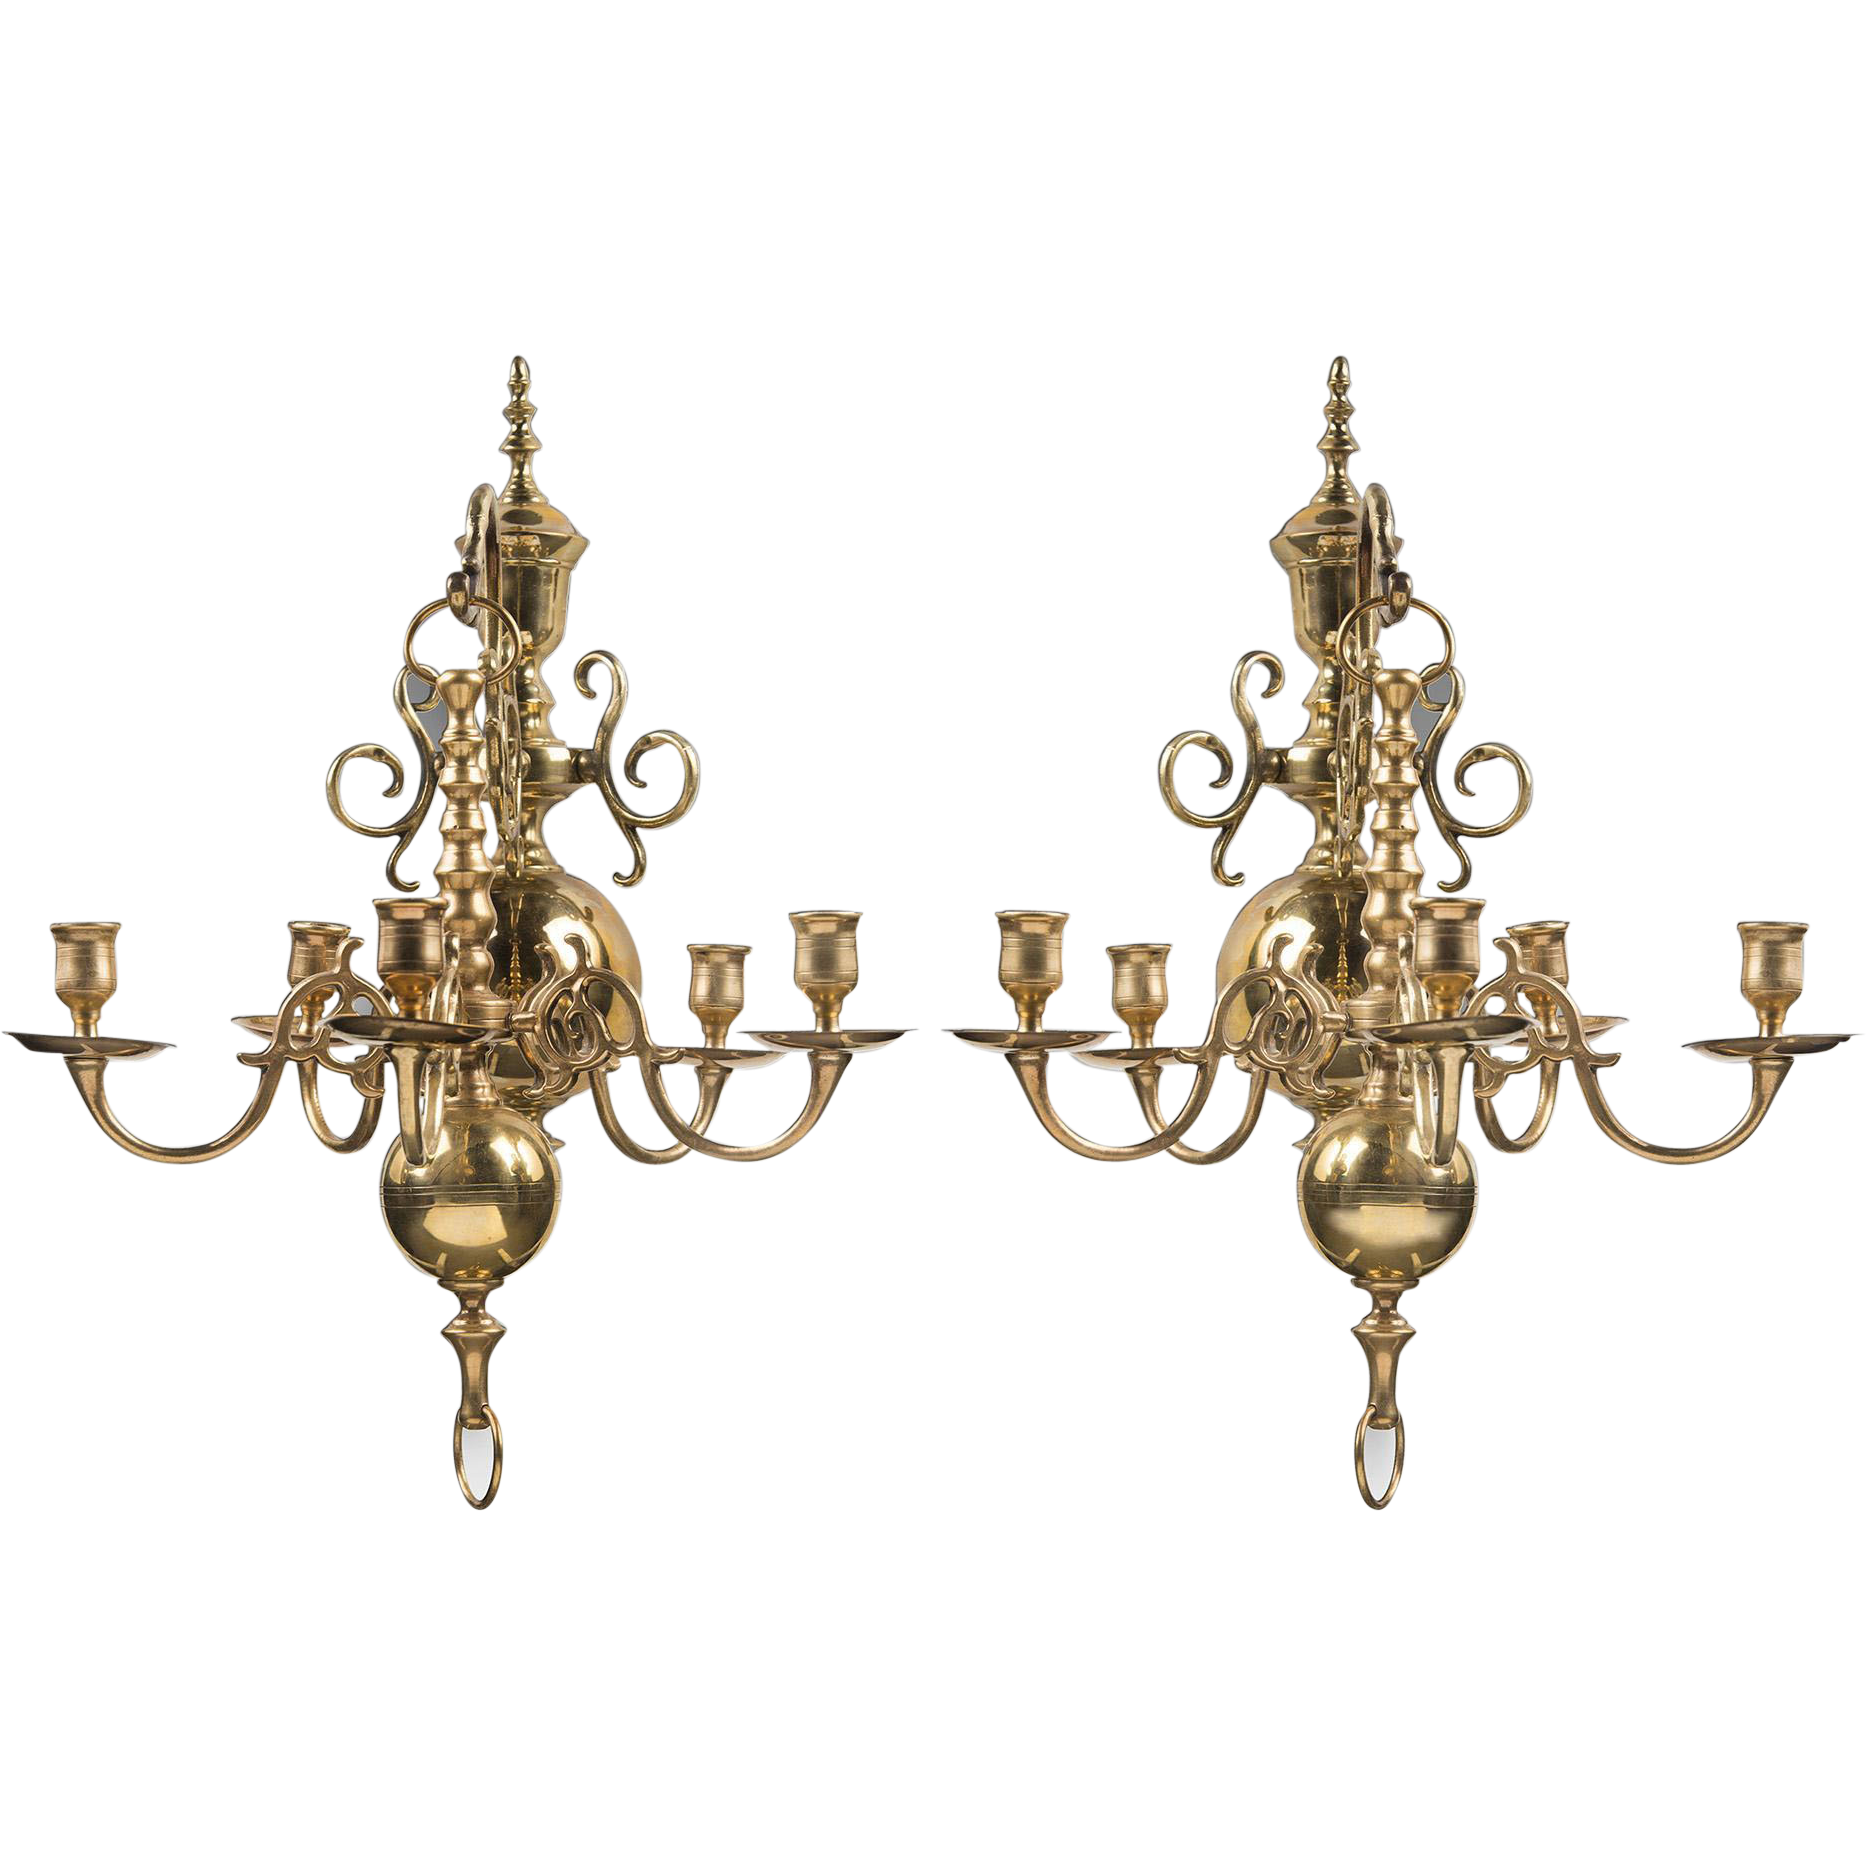 Pair of Early 20th C. Solid Brass Chandelier Wall Sconces, Dutch Manner